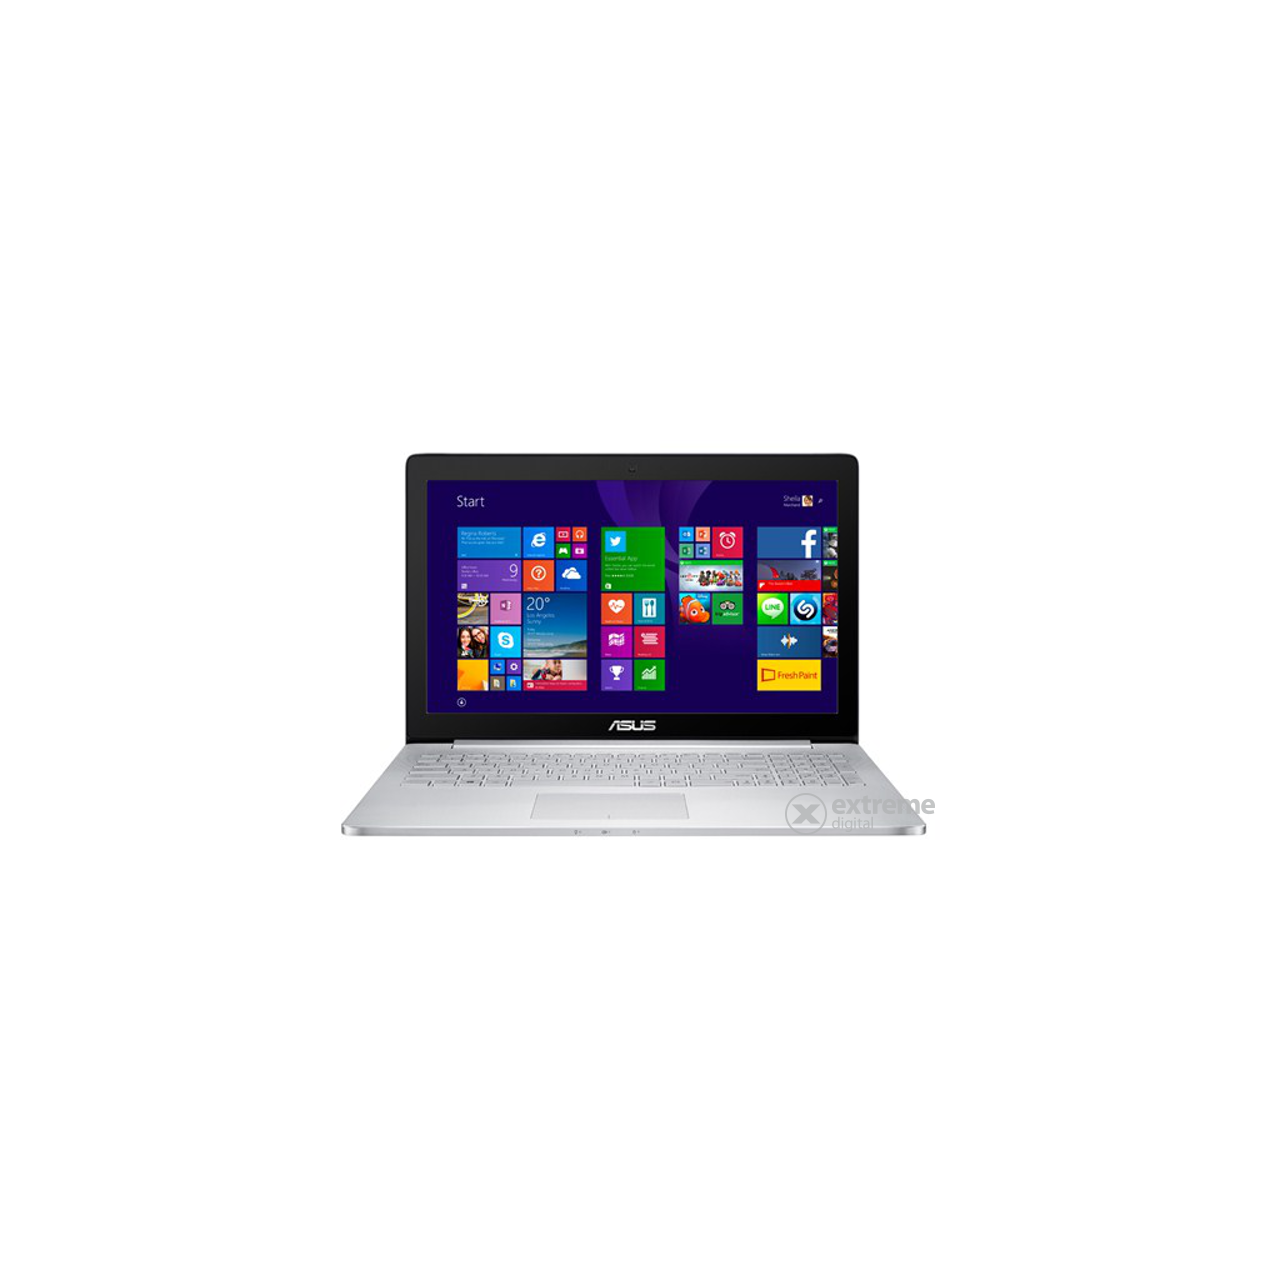 9 Beretta 92 Hd Wallpapers together with Asus Zenbook Ux501jw Cn266t Notebook Windows 10 Alu also Sunset Landscapes Cityscapes Urban Buildings Malaysia Kuala Lumpur Wallpaper 27755 together with Usp S Orion Cs Go Pistol 3141 as well 33 Zombie Hd Wallpapers. on windows laptop